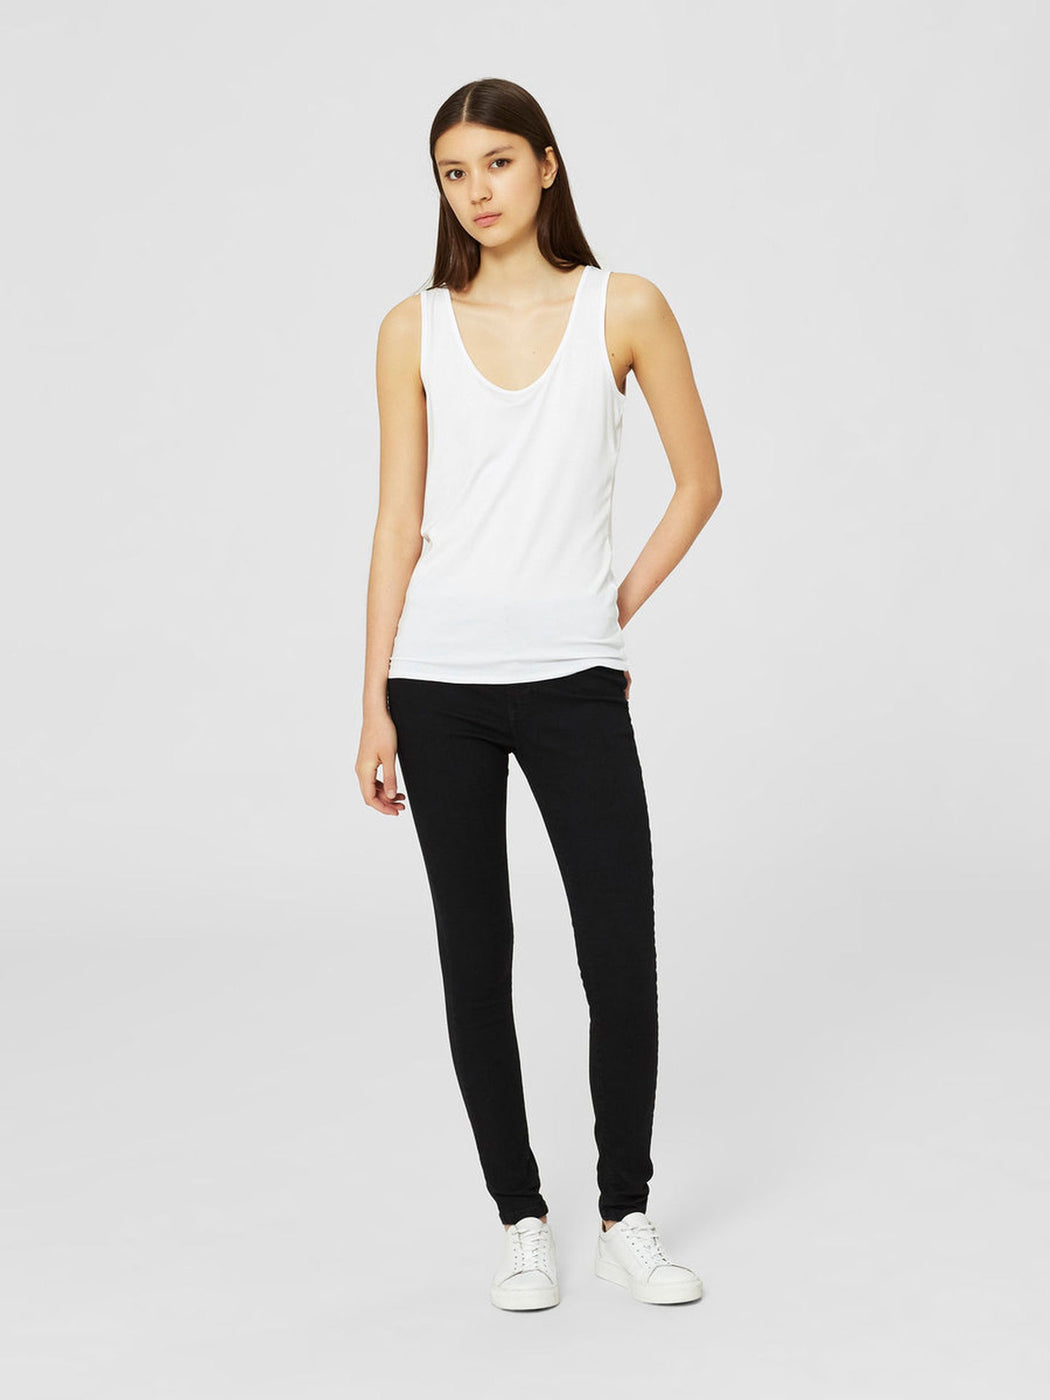 Mio White Scoop Neck Vest Tank Top